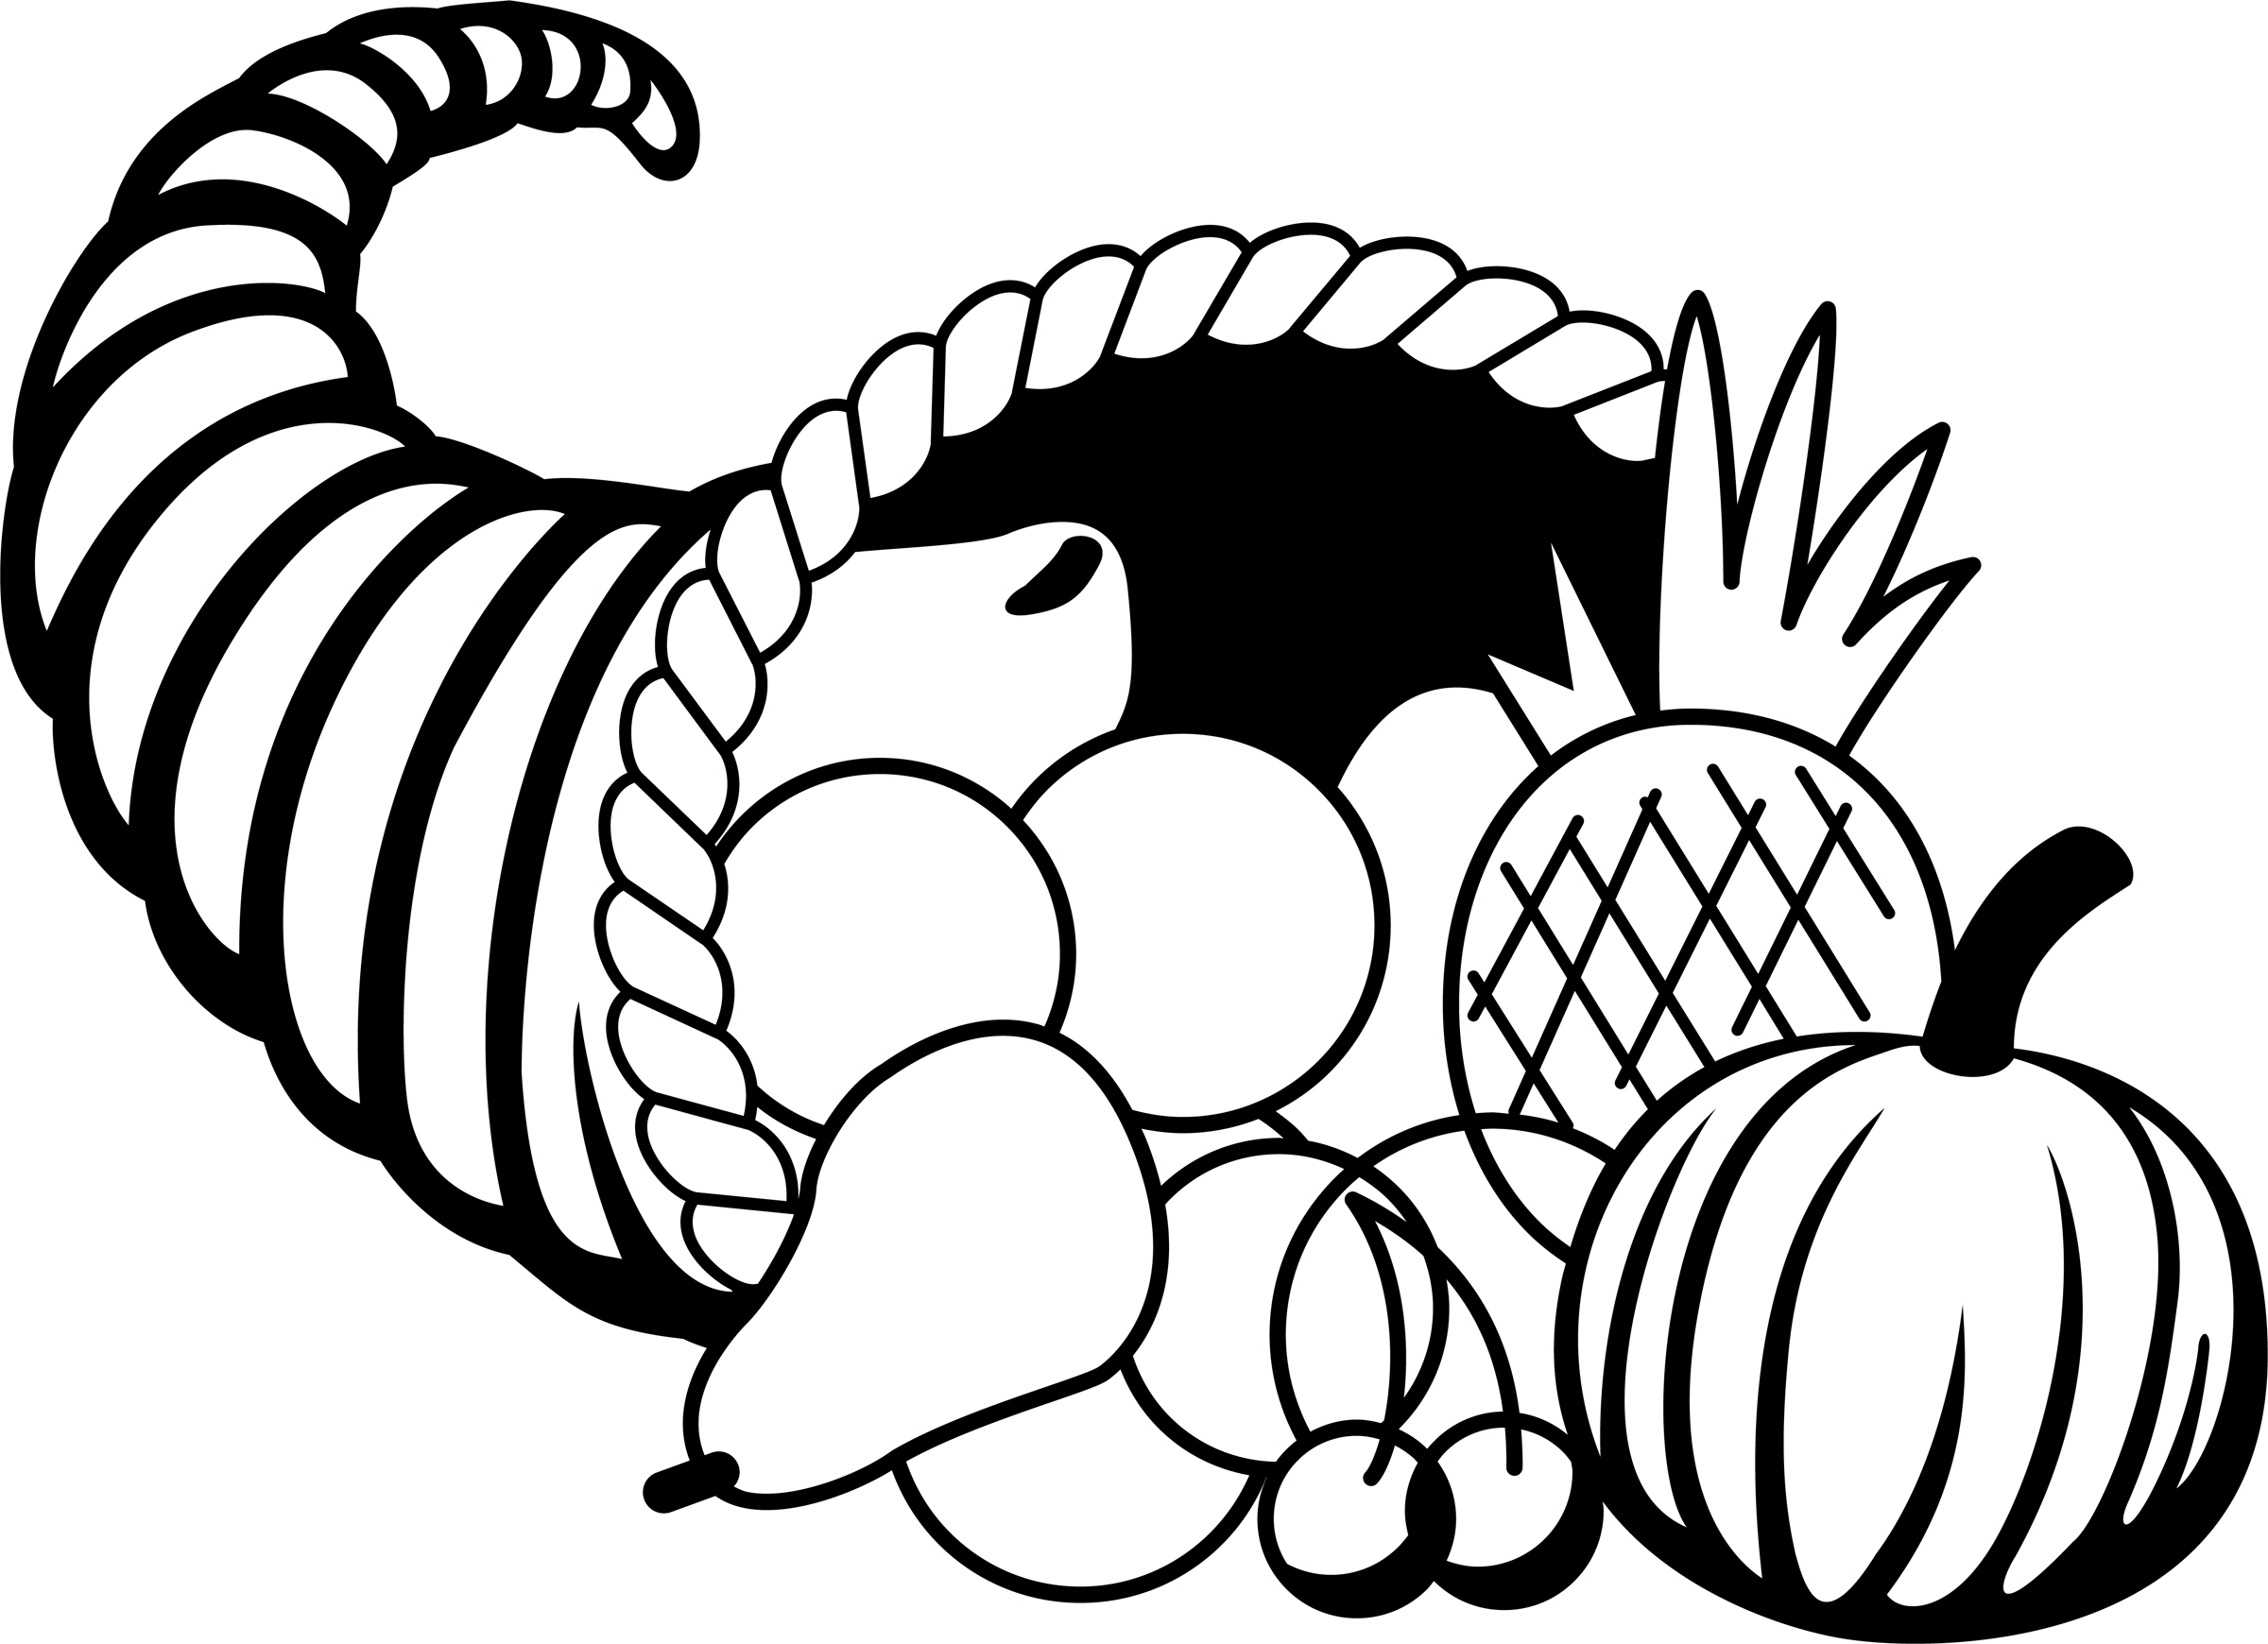 Black And White Cornucopia Clipart.